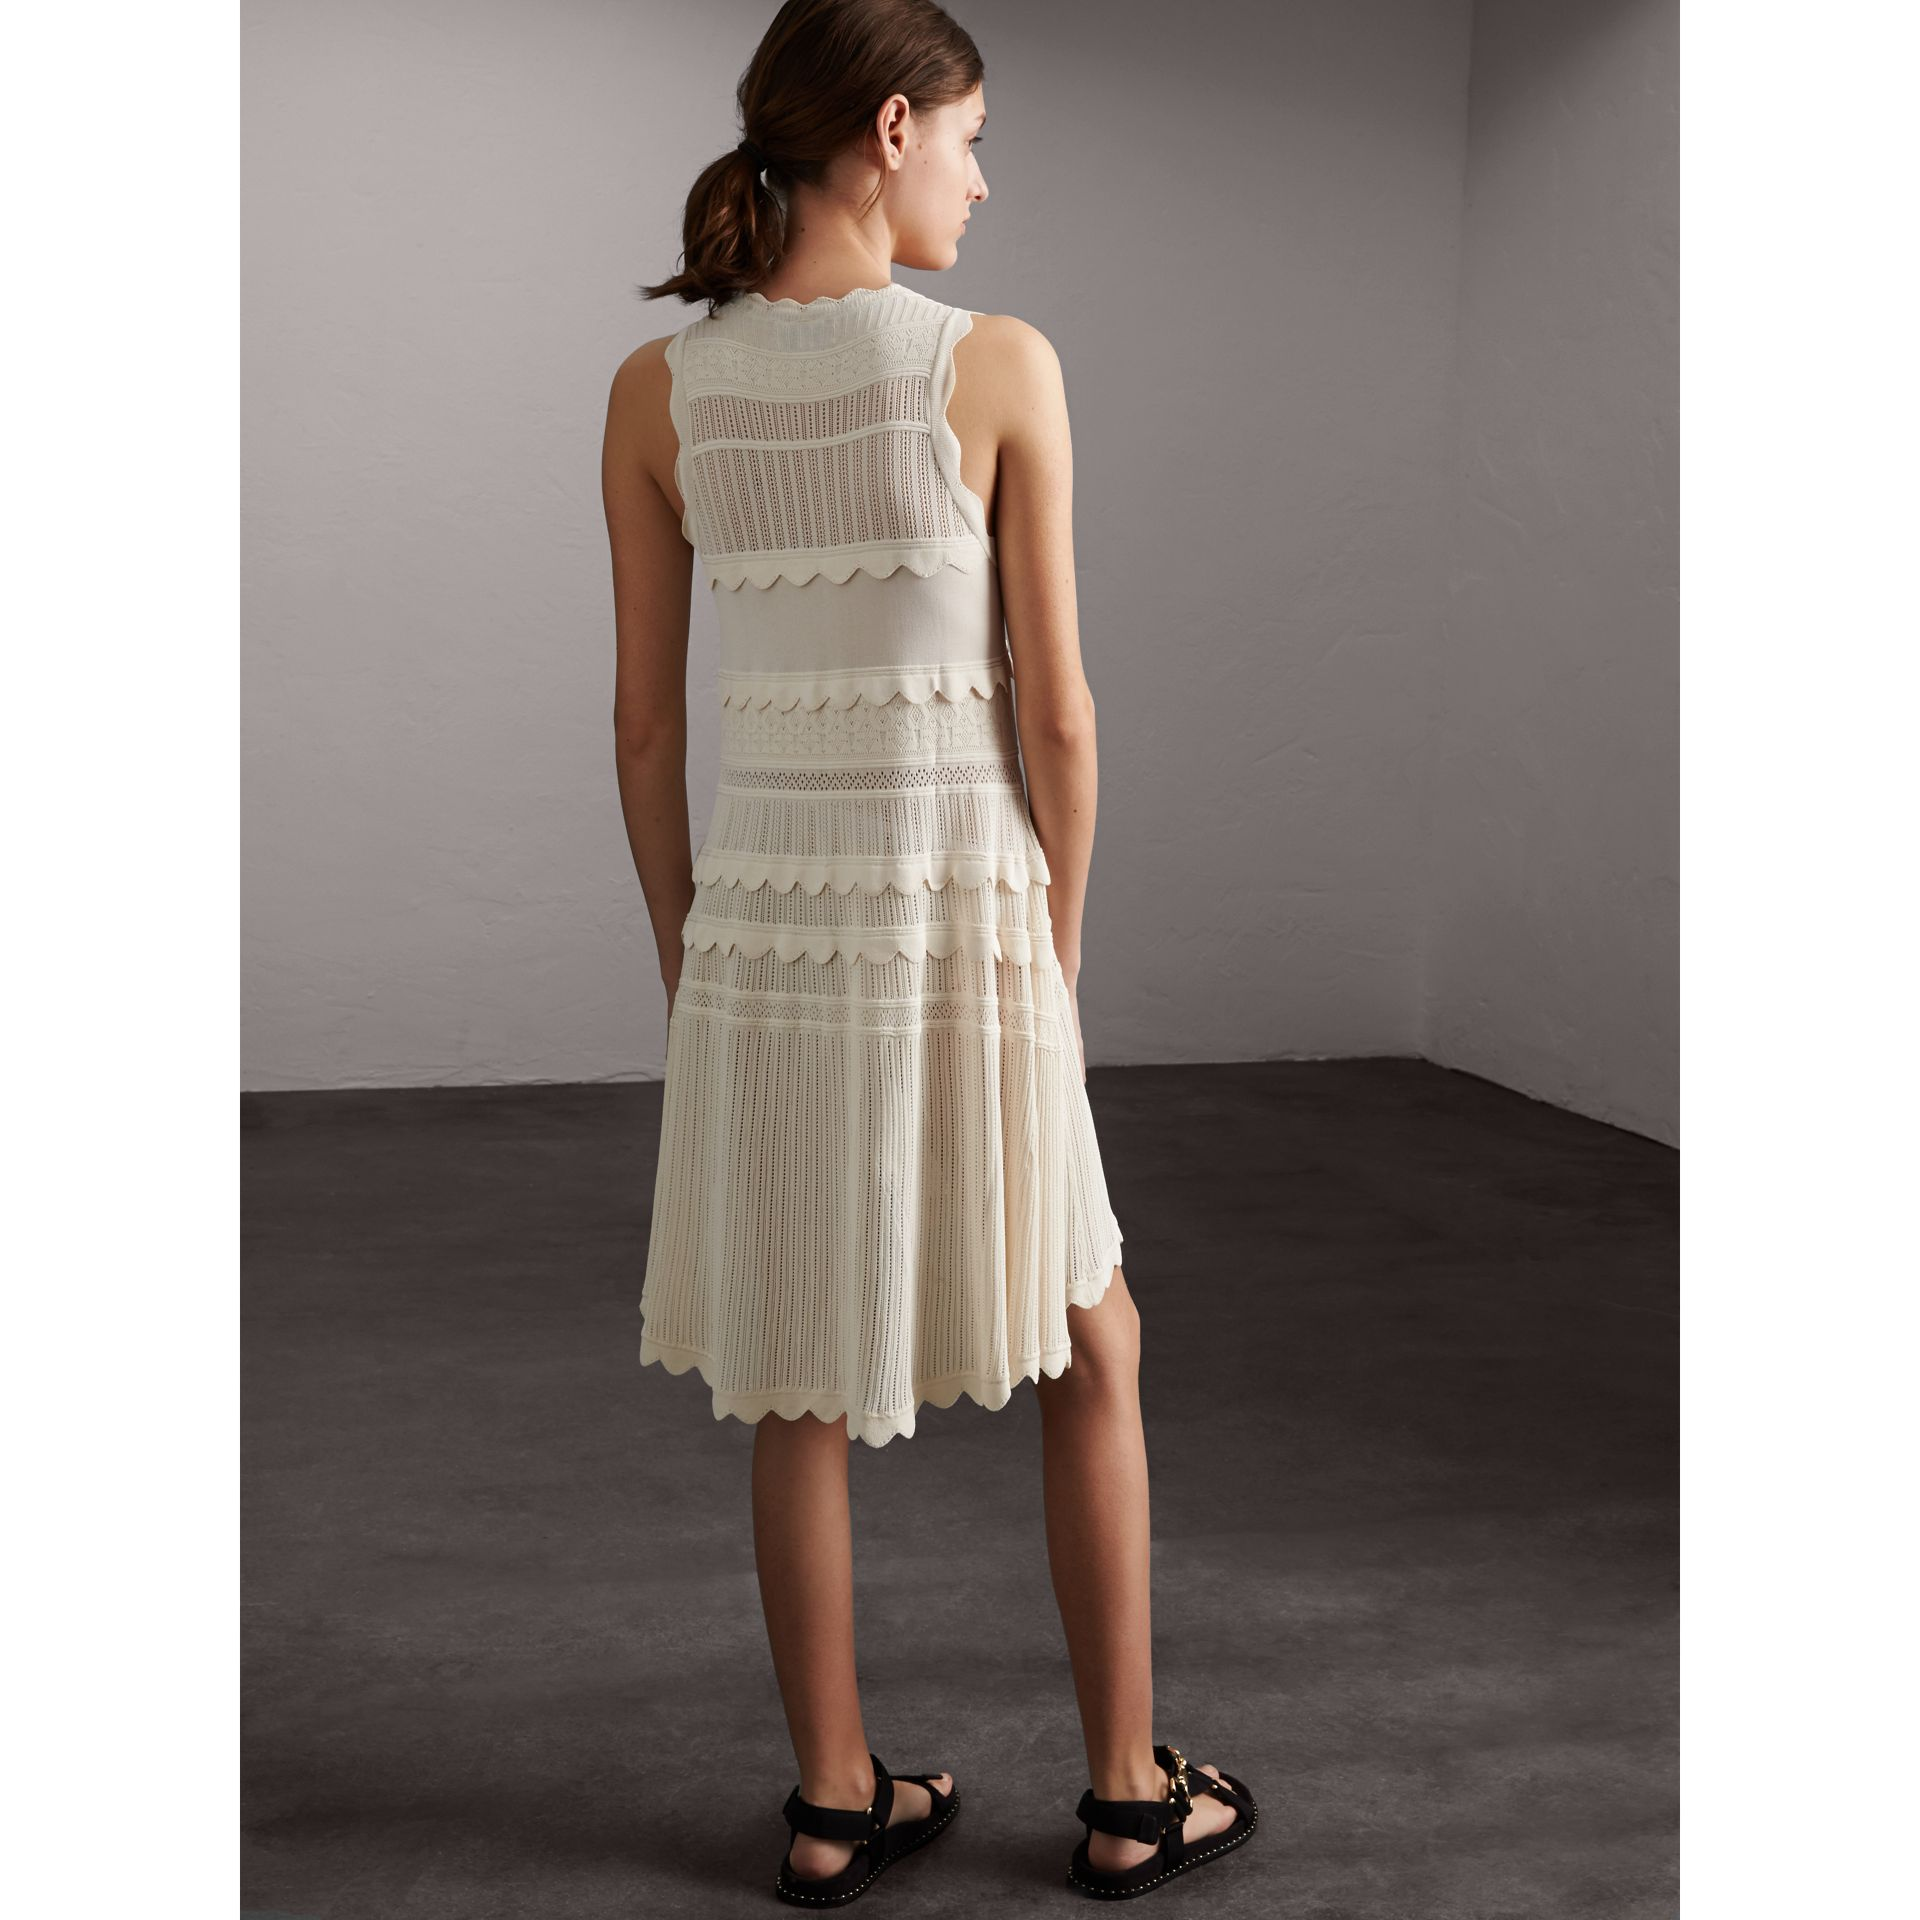 Scallop Detail Multi-stitch Swing Dress in Natural White - Women | Burberry - gallery image 3